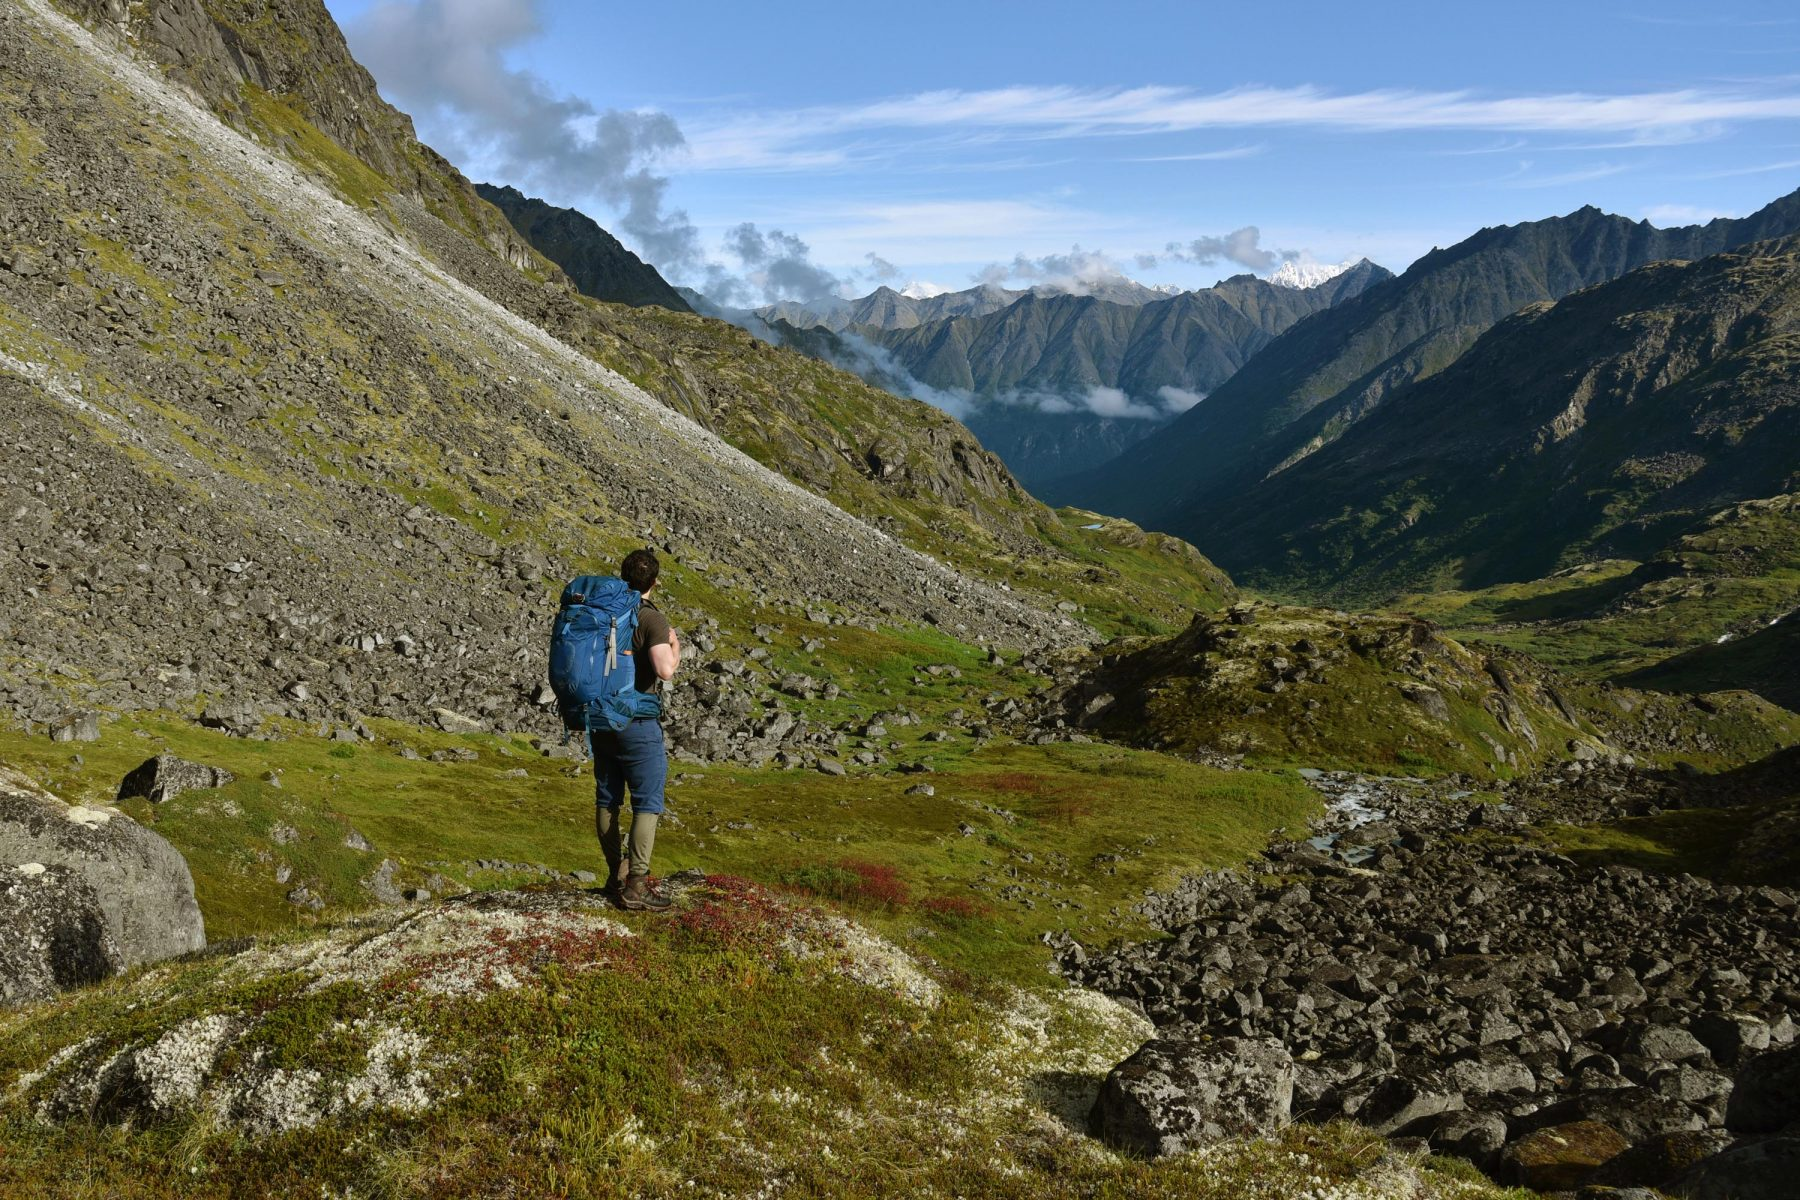 Routefinding in the Talkeetna Mountains